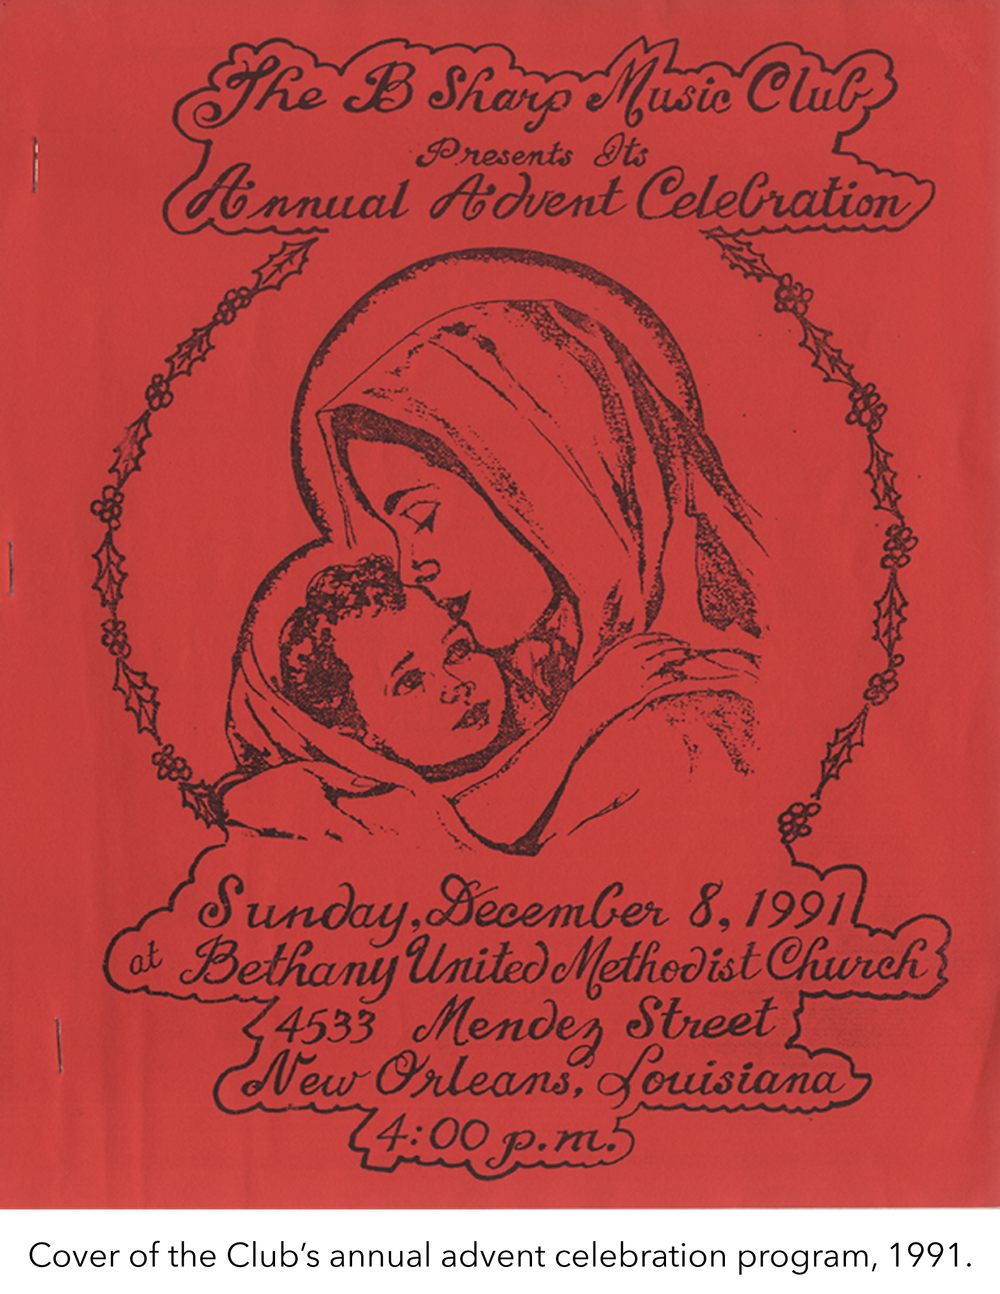 Cover of the Club's annual advent celebration program, 1991.